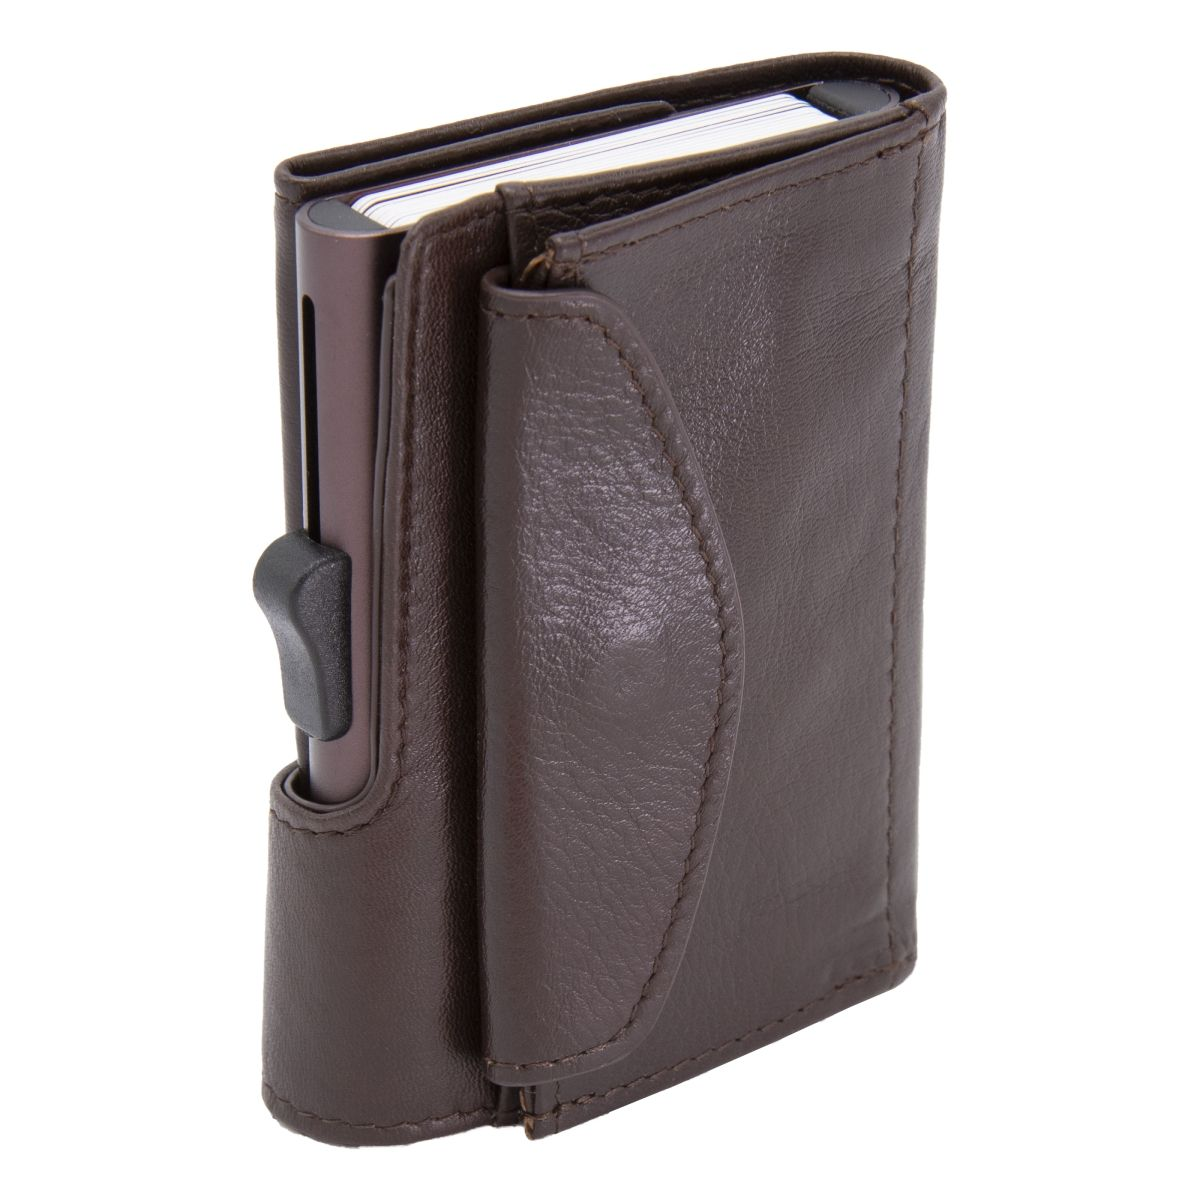 XL Aluminum Wallet with Genuine Leather and Coins Pocket - Mogano Brown